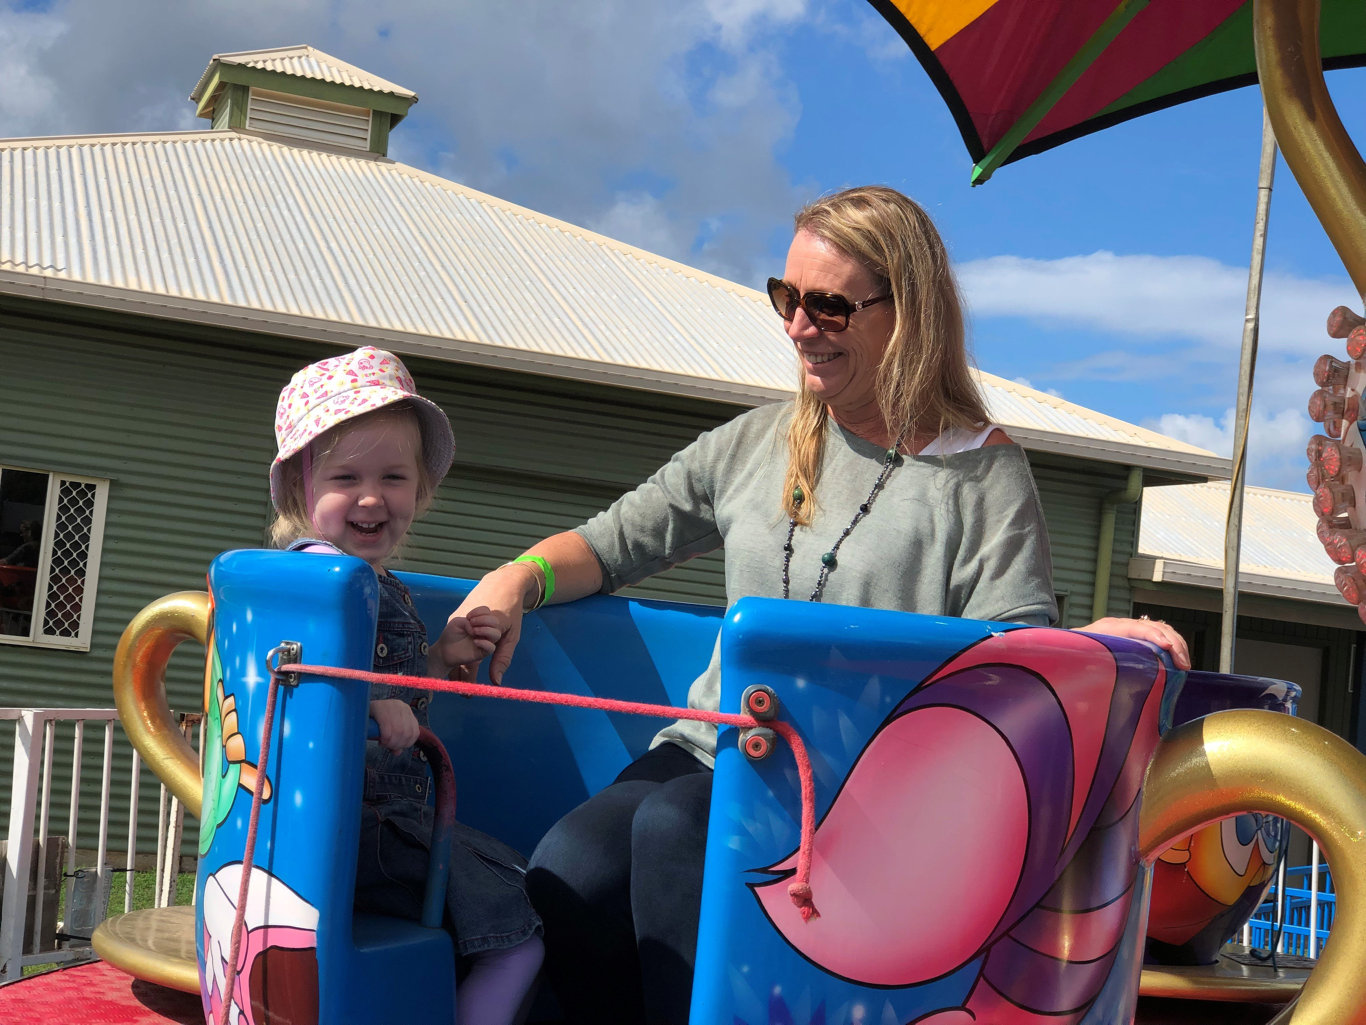 Deb Mallane and her daughter Evie Mallane-Gallagher enjoyed a spin on the teacup ride at the Fraser Coast Show.